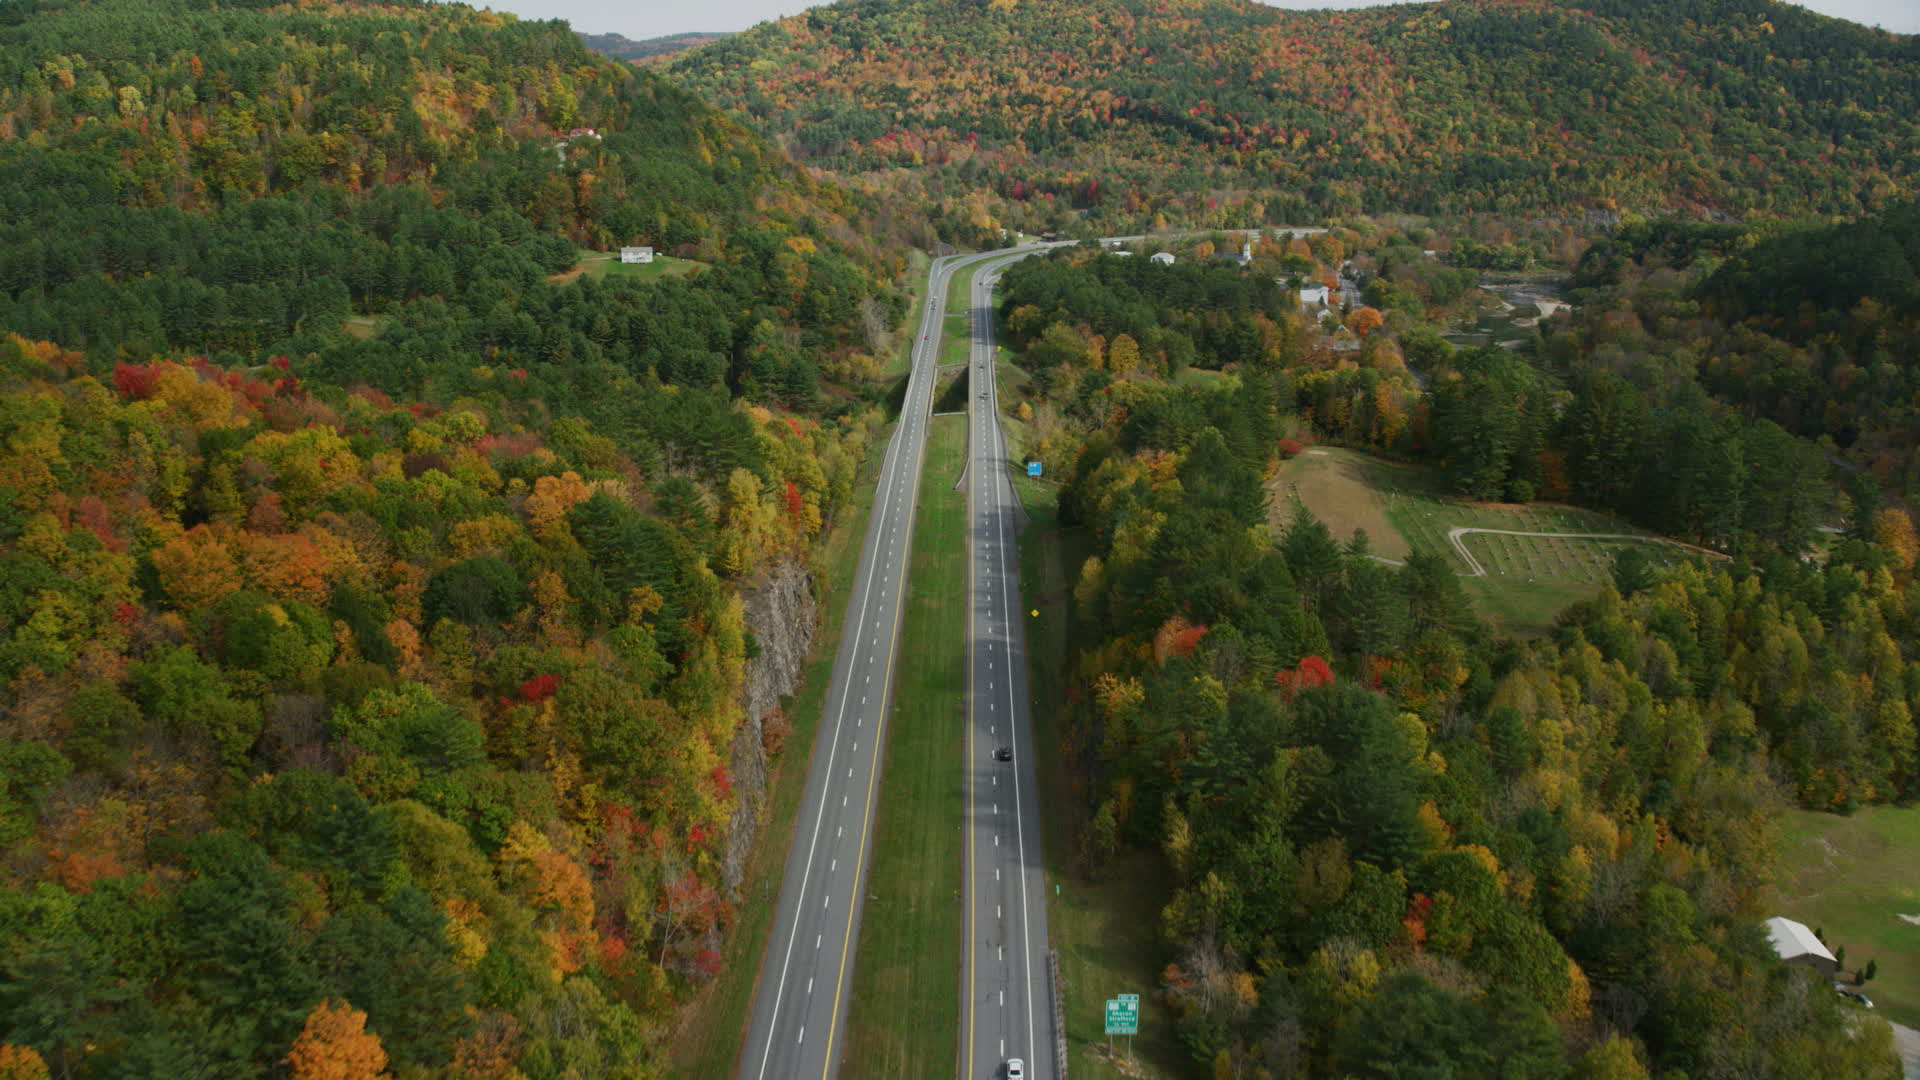 6K stock footage aerial video flying over interstate 89 through colorful trees  in autumn, Sharon, Vermont Aerial Stock Footage AX150_453 | Axiom Images